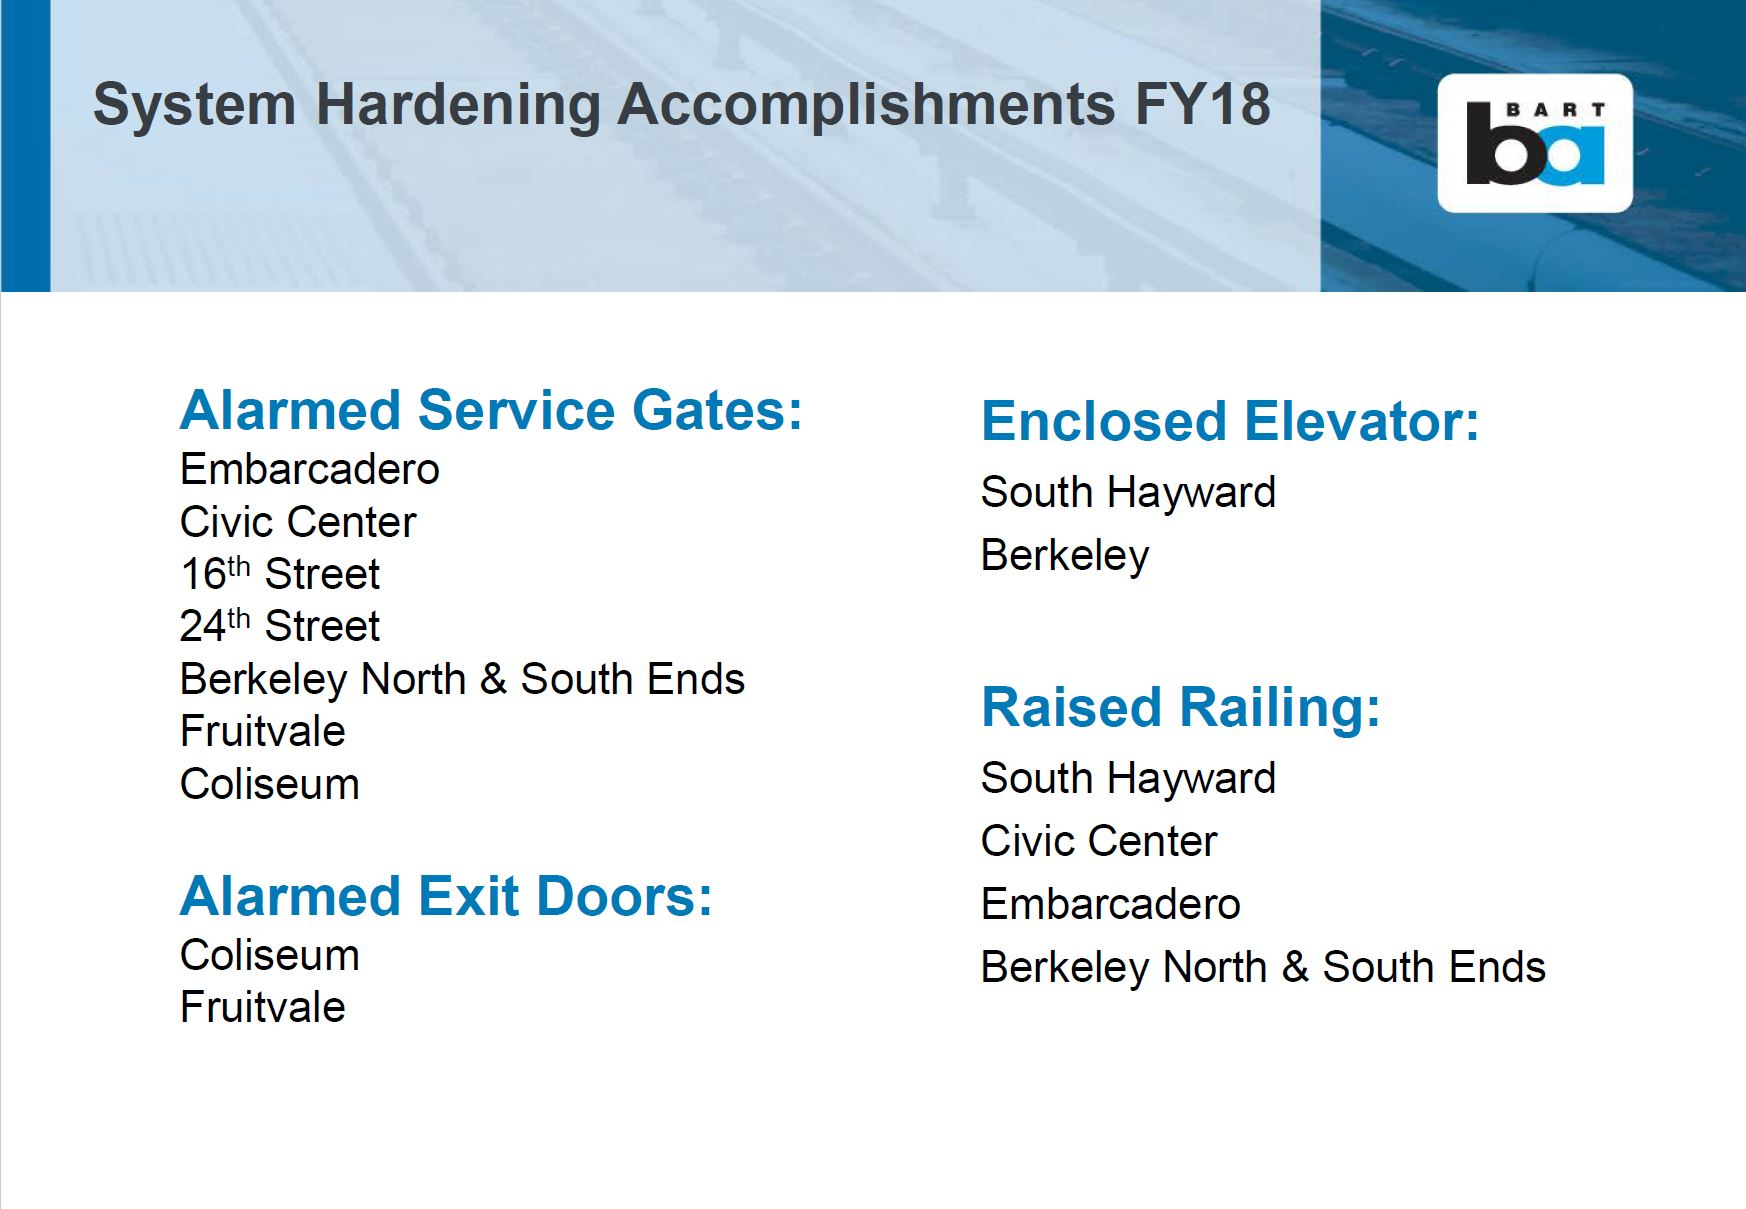 Station hardening accomplishments FY 18